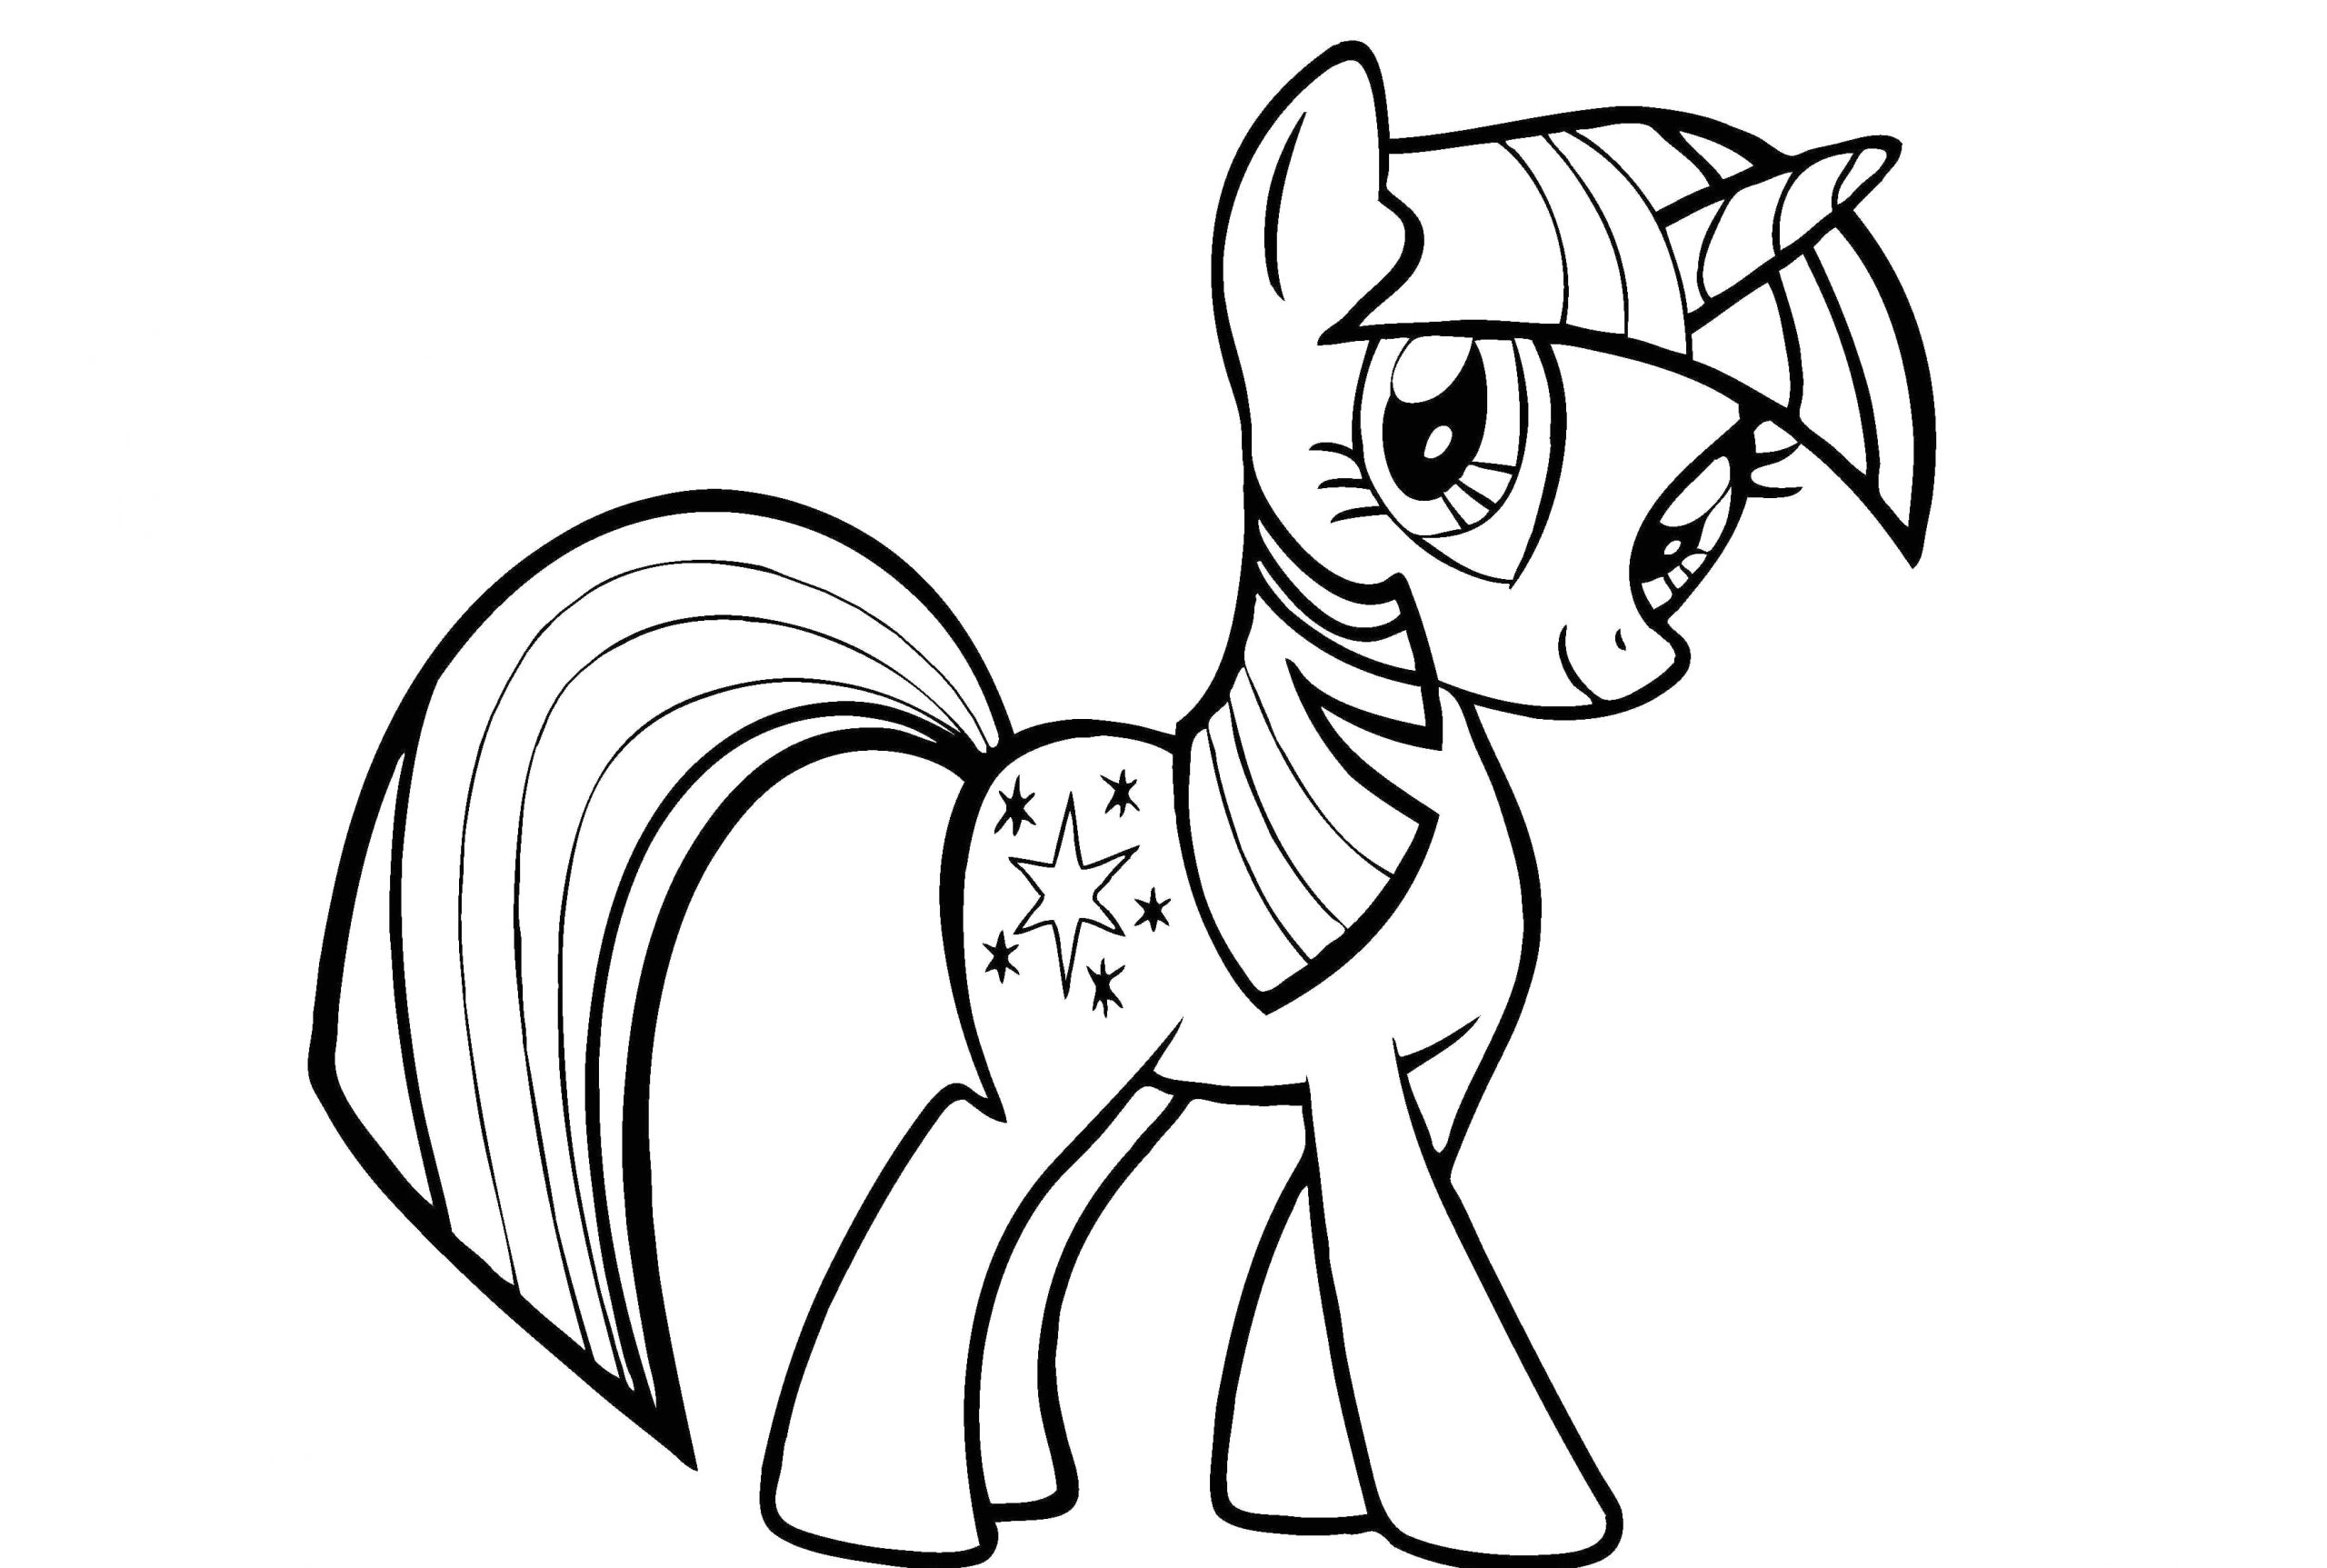 Cadence Twilight Sparkle My Little Pony Coloring Pages My Little Pony Twilight Sparkle Coloring Pages – Through